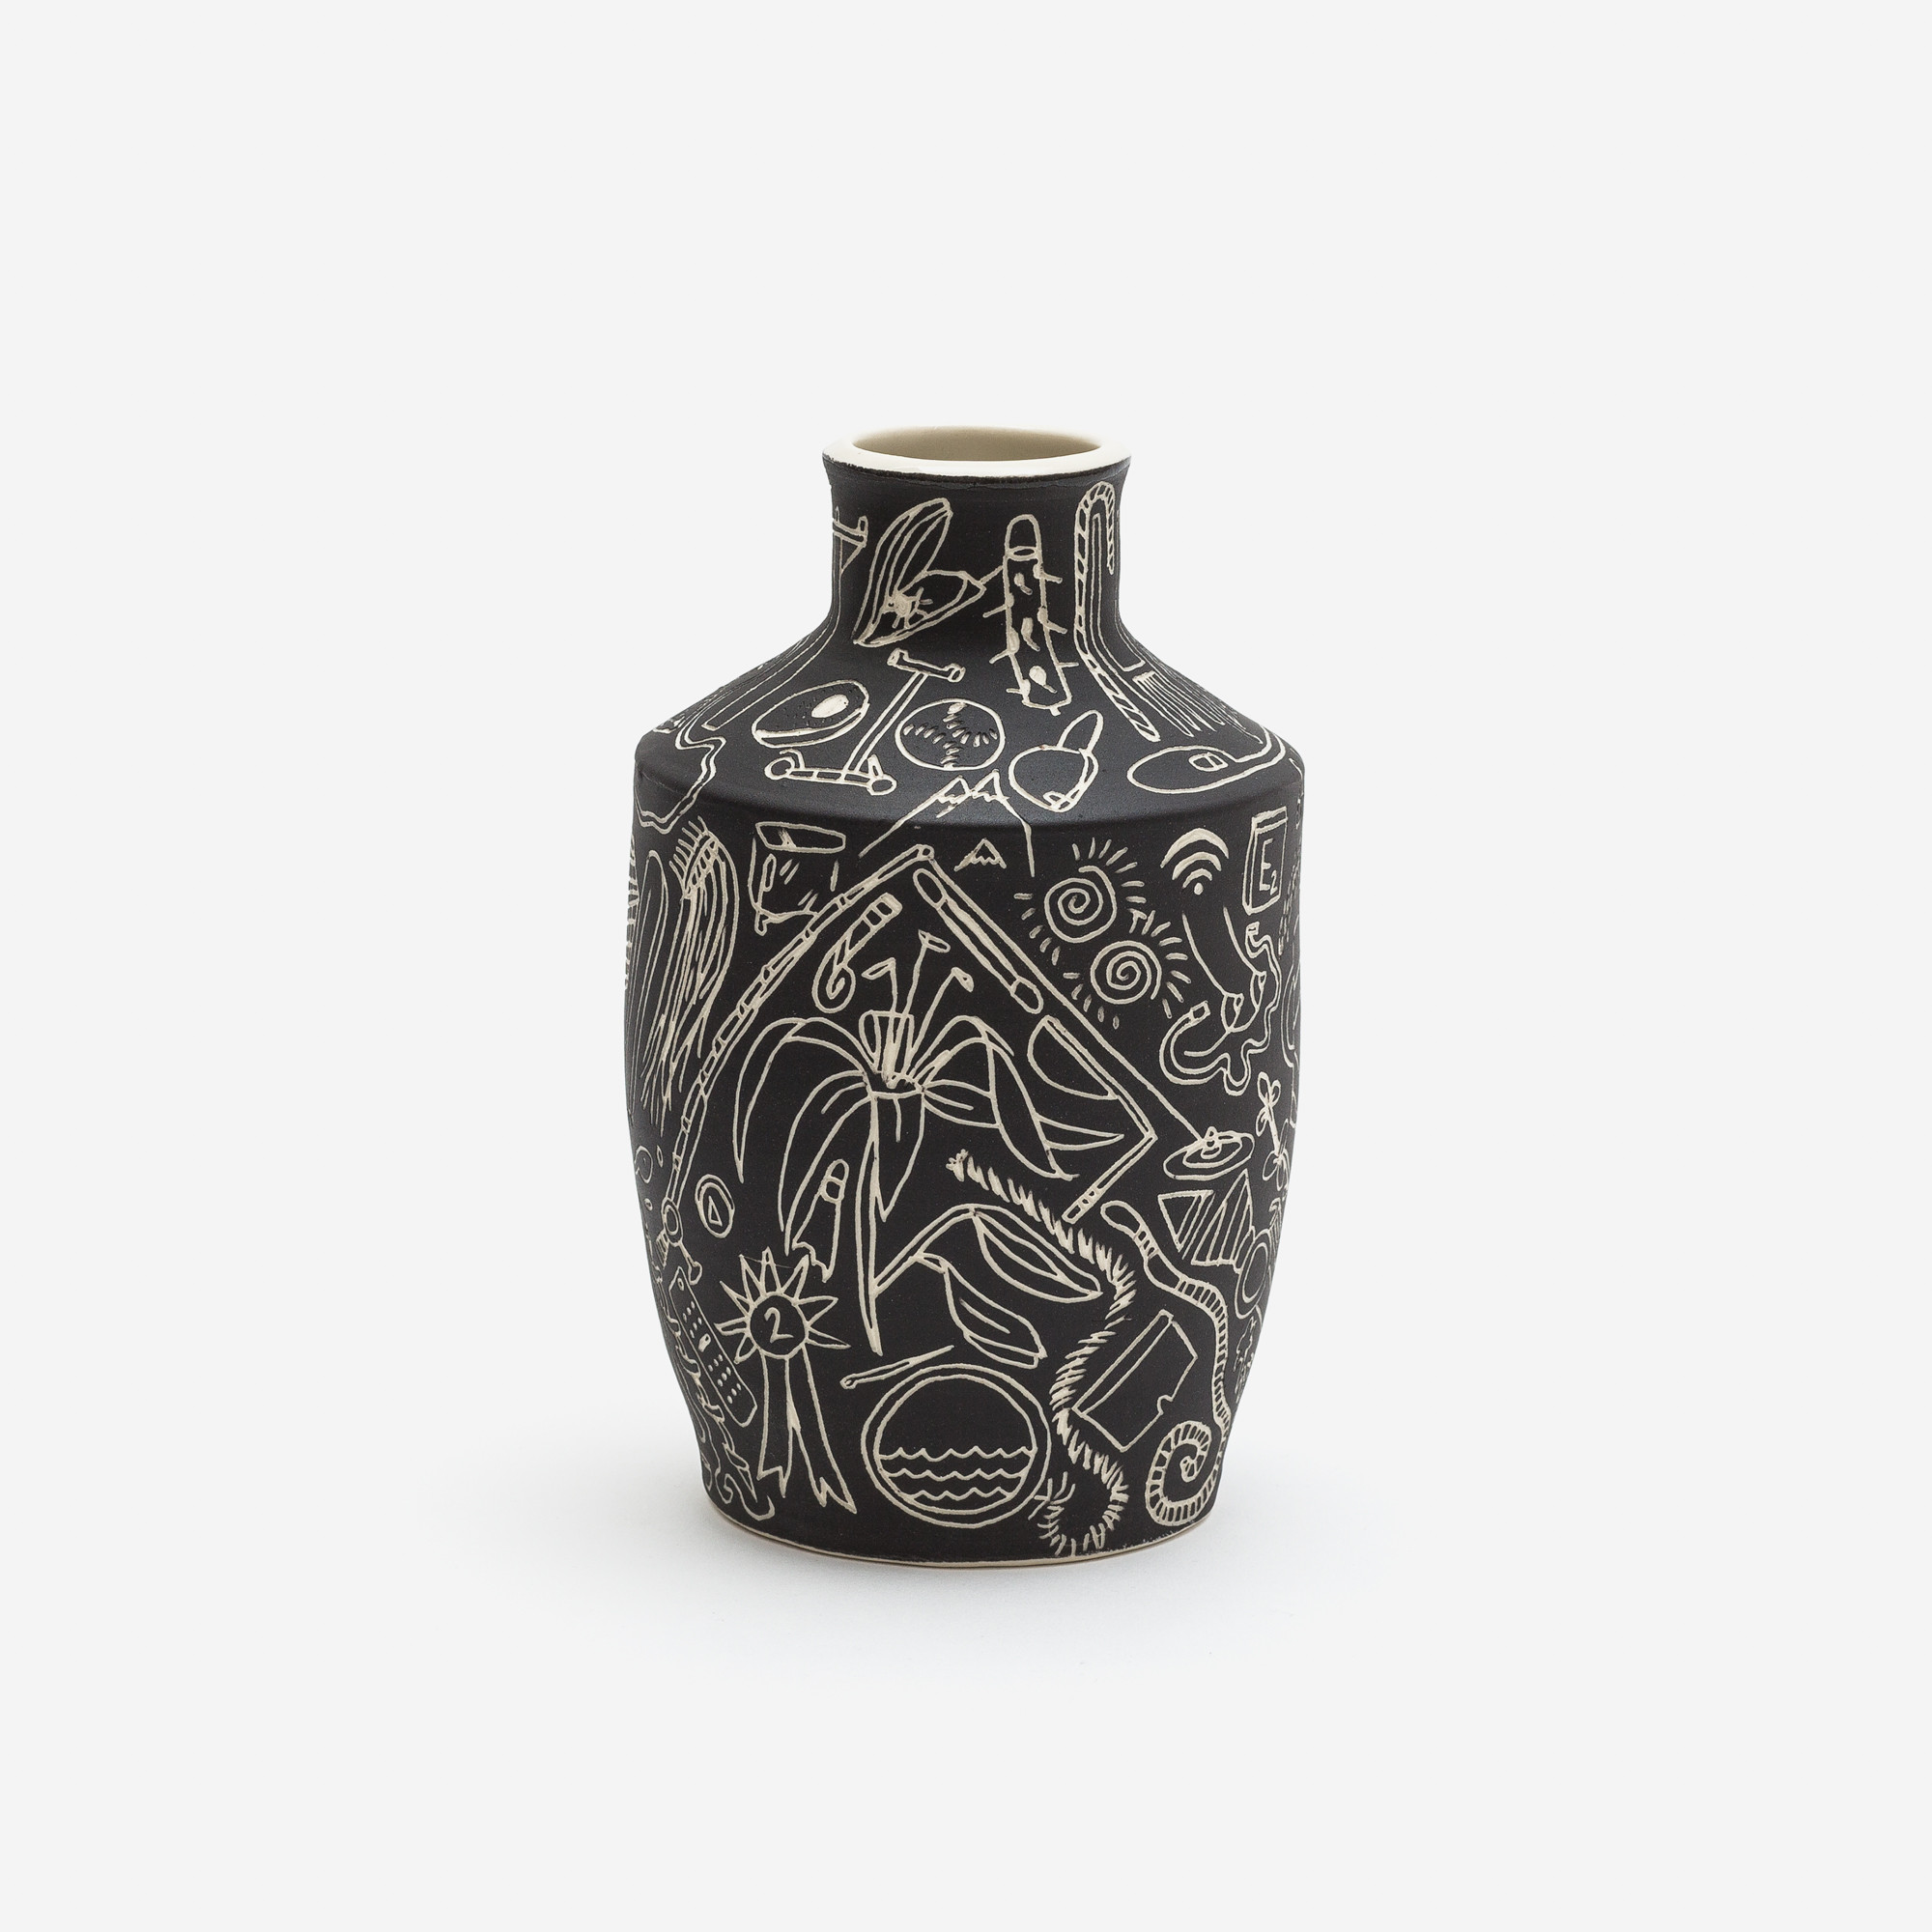 Dana Bechert | Vase with ancient greek style